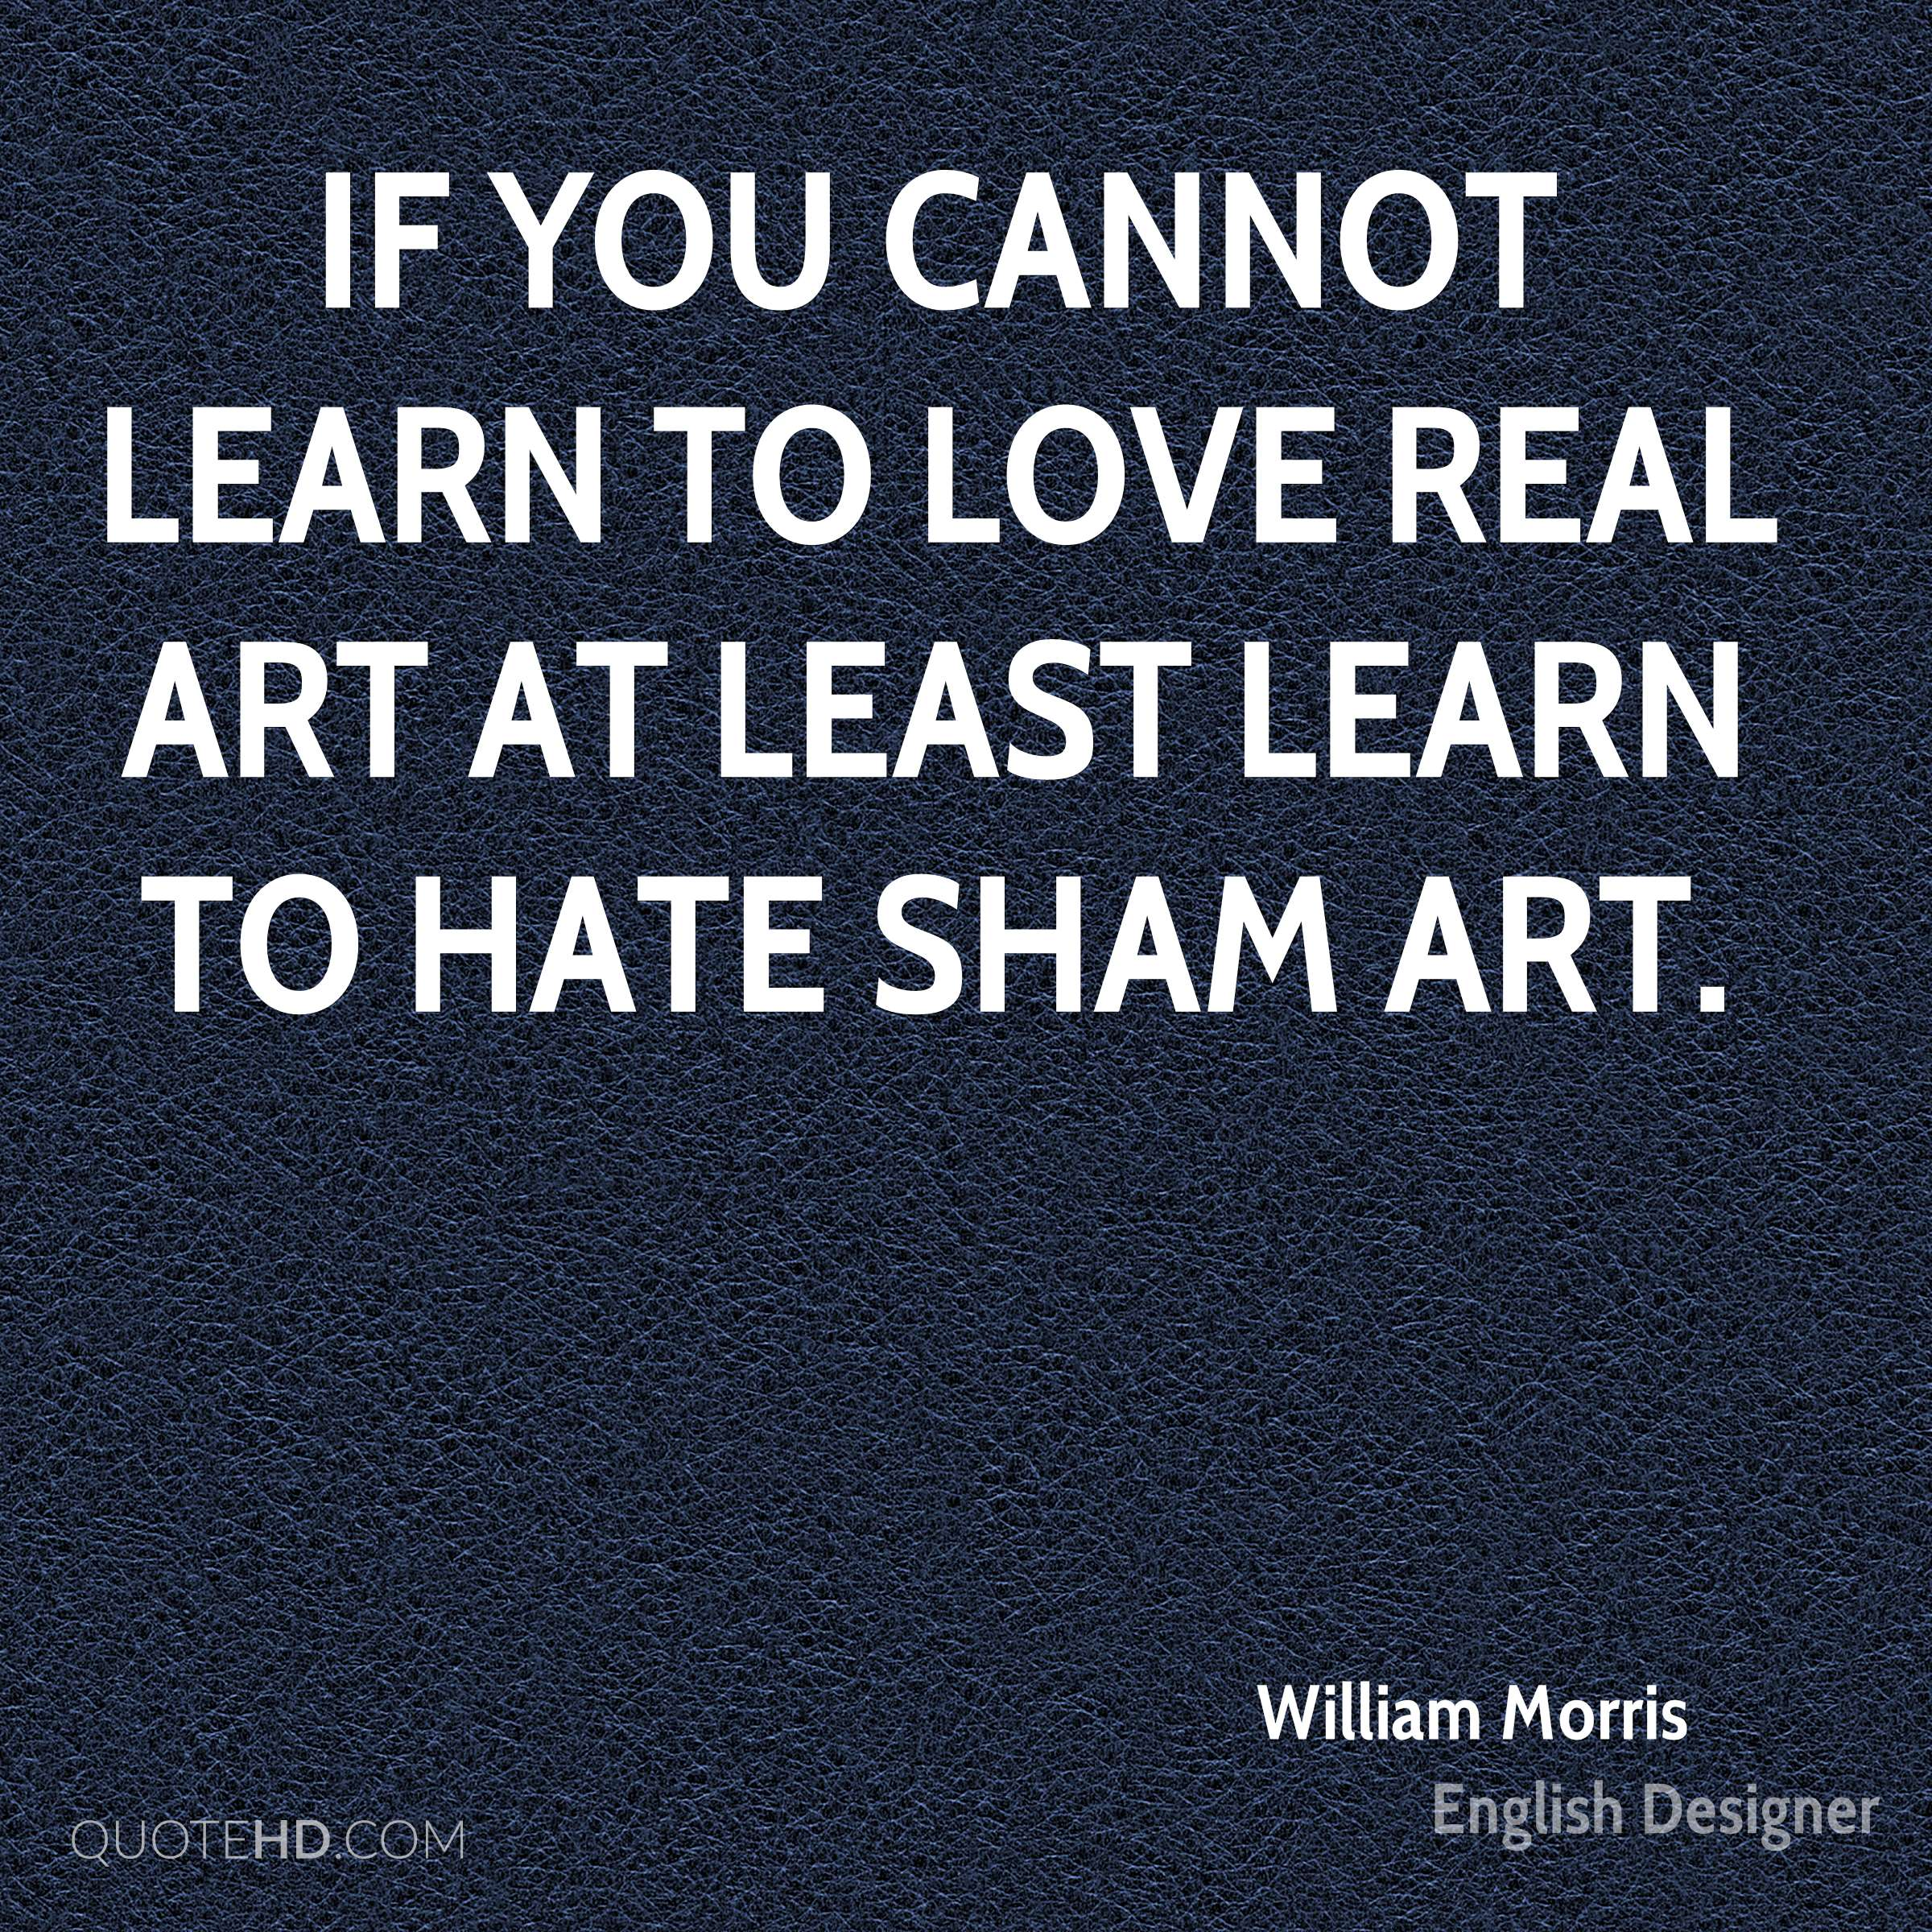 If you cannot learn to love real art at least learn to hate sham art.